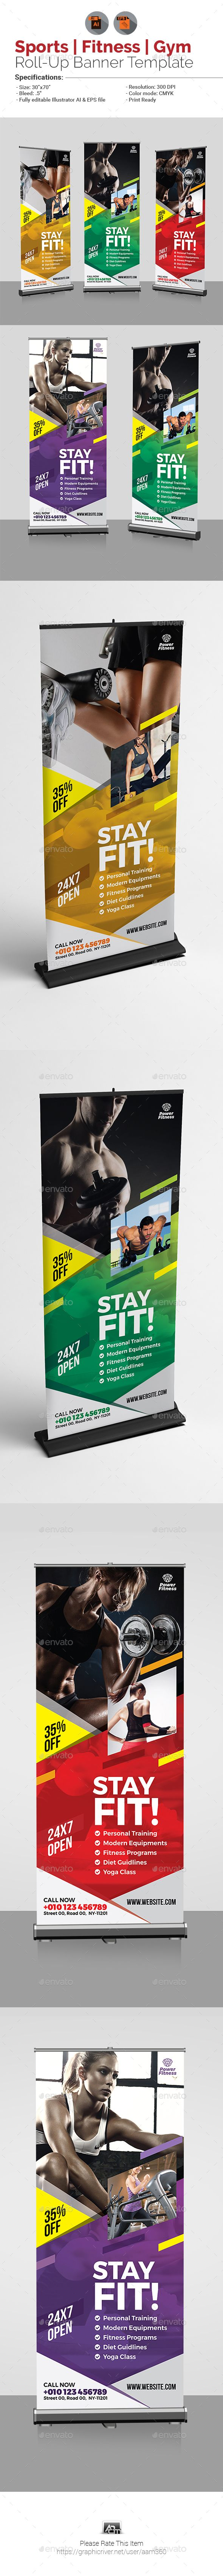 Fitness Roll Up Banner - Signage Print Templates   Roll-up Banner